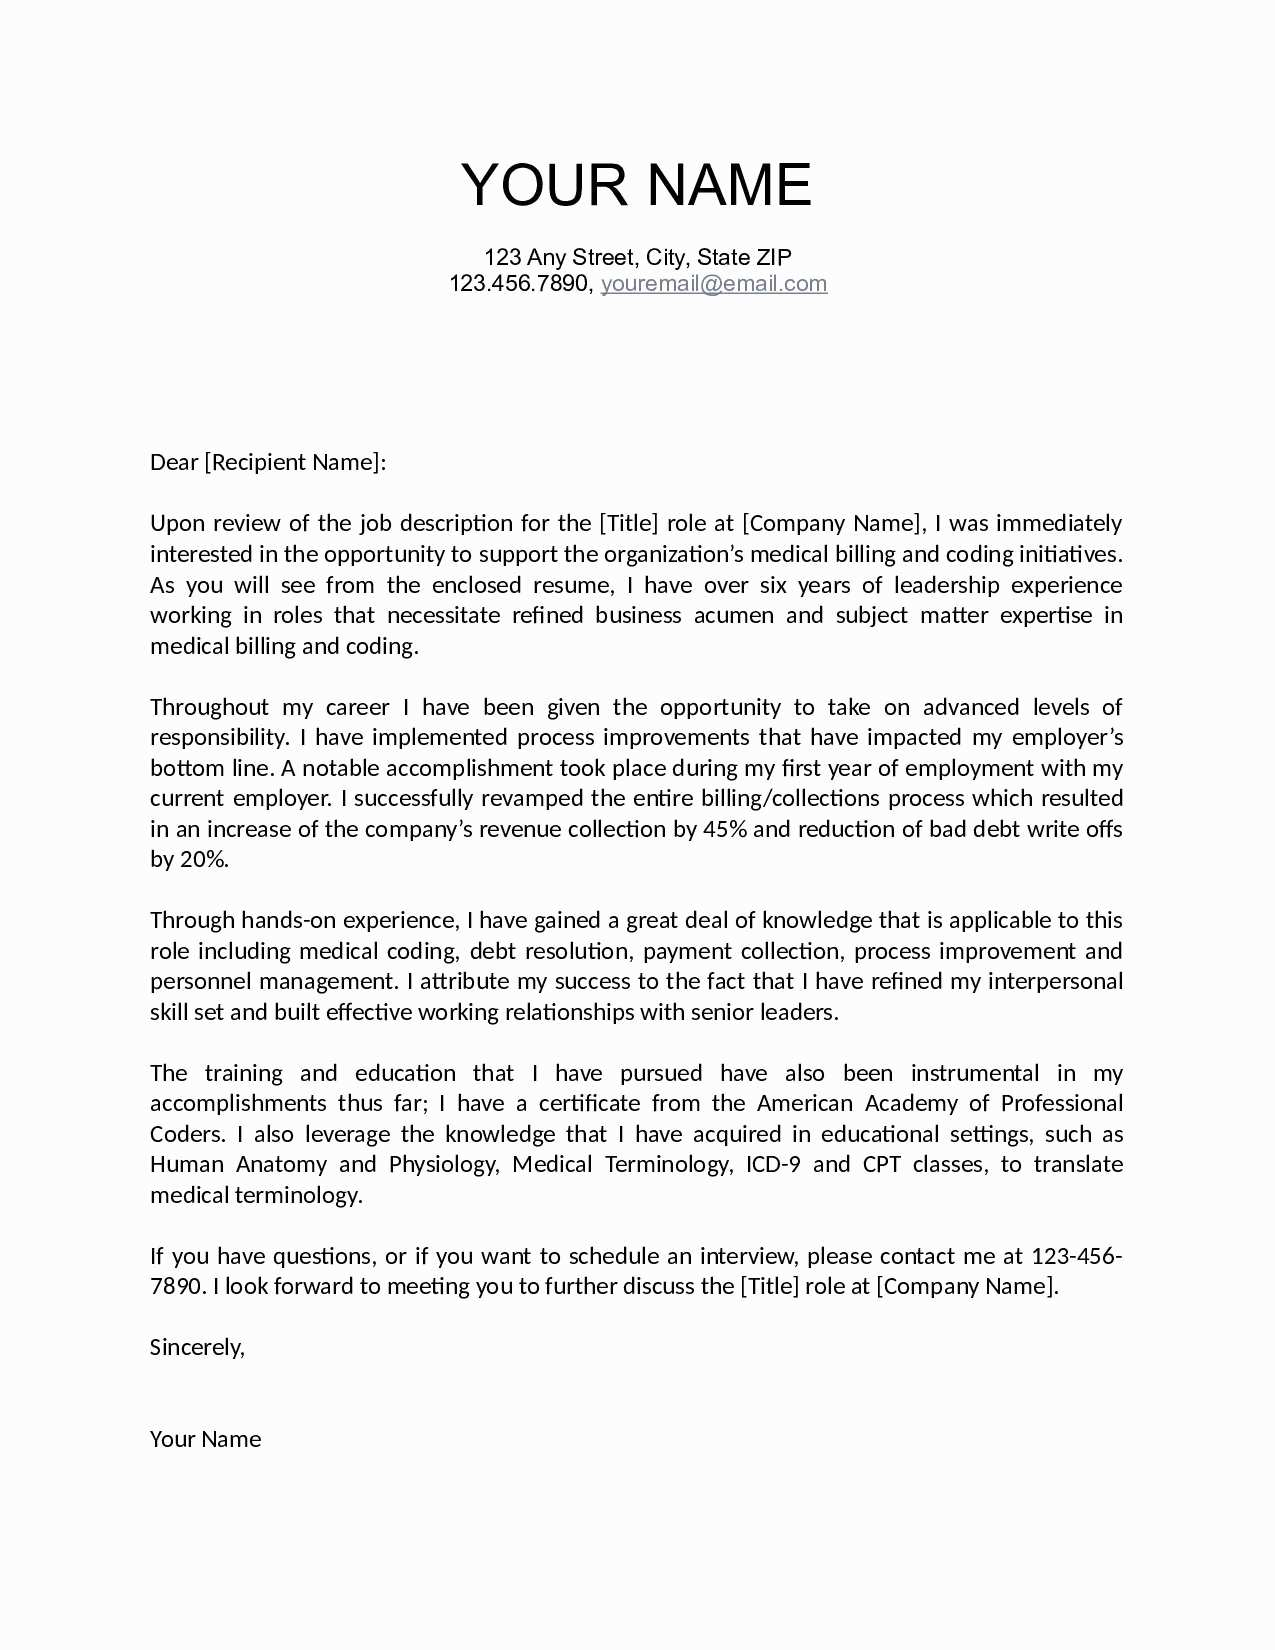 no show fee letter template example-Sample Cover Letter Template Awesome Fee Schedule Template Unique Cover Letter Template for A Job Copy 10-j